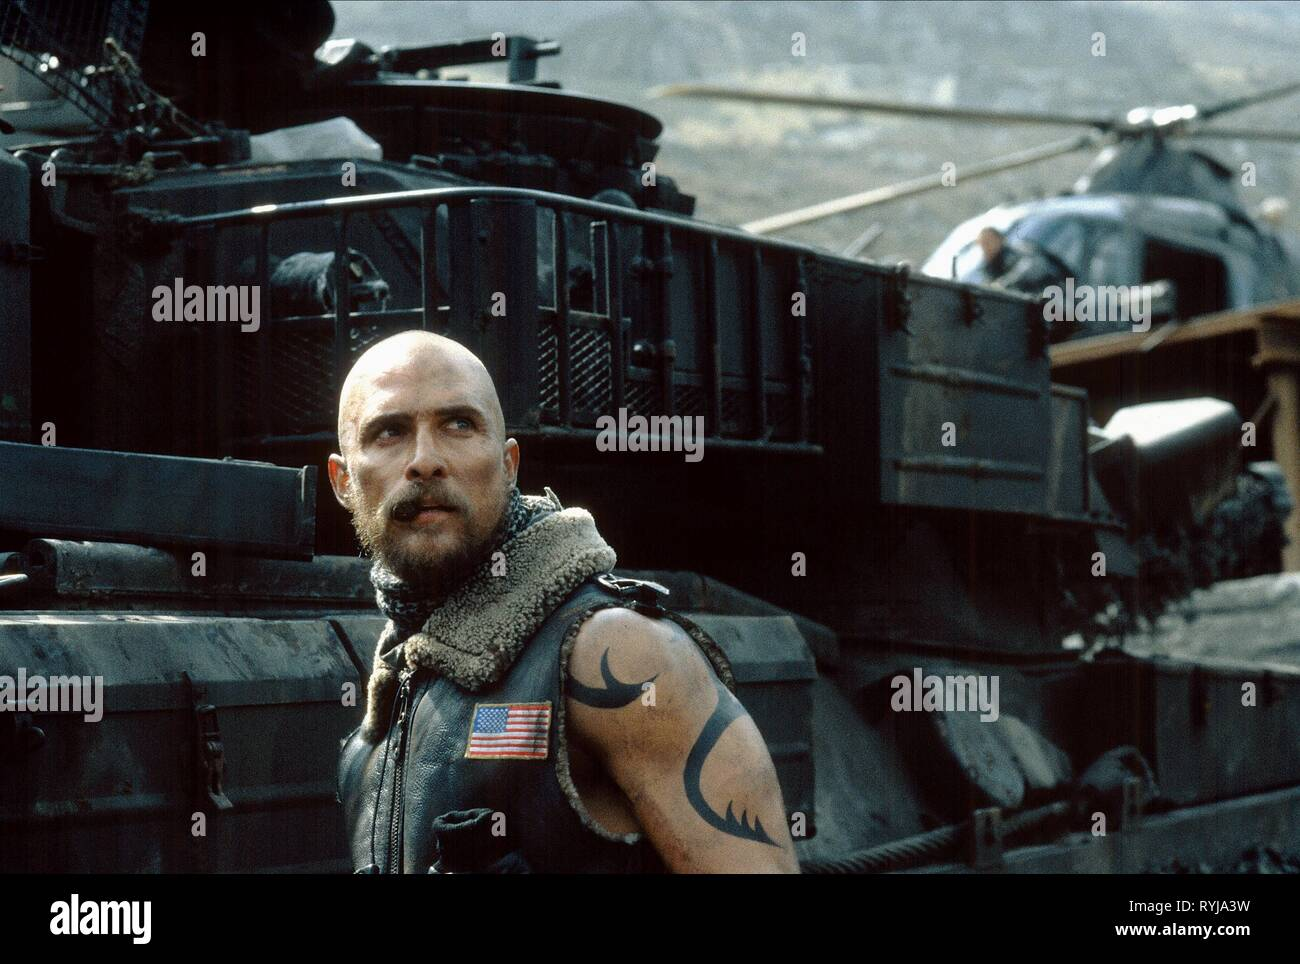 REIGN OF FIRE, MATTHEW MCCONAUGHEY, 2002 - Stock Image